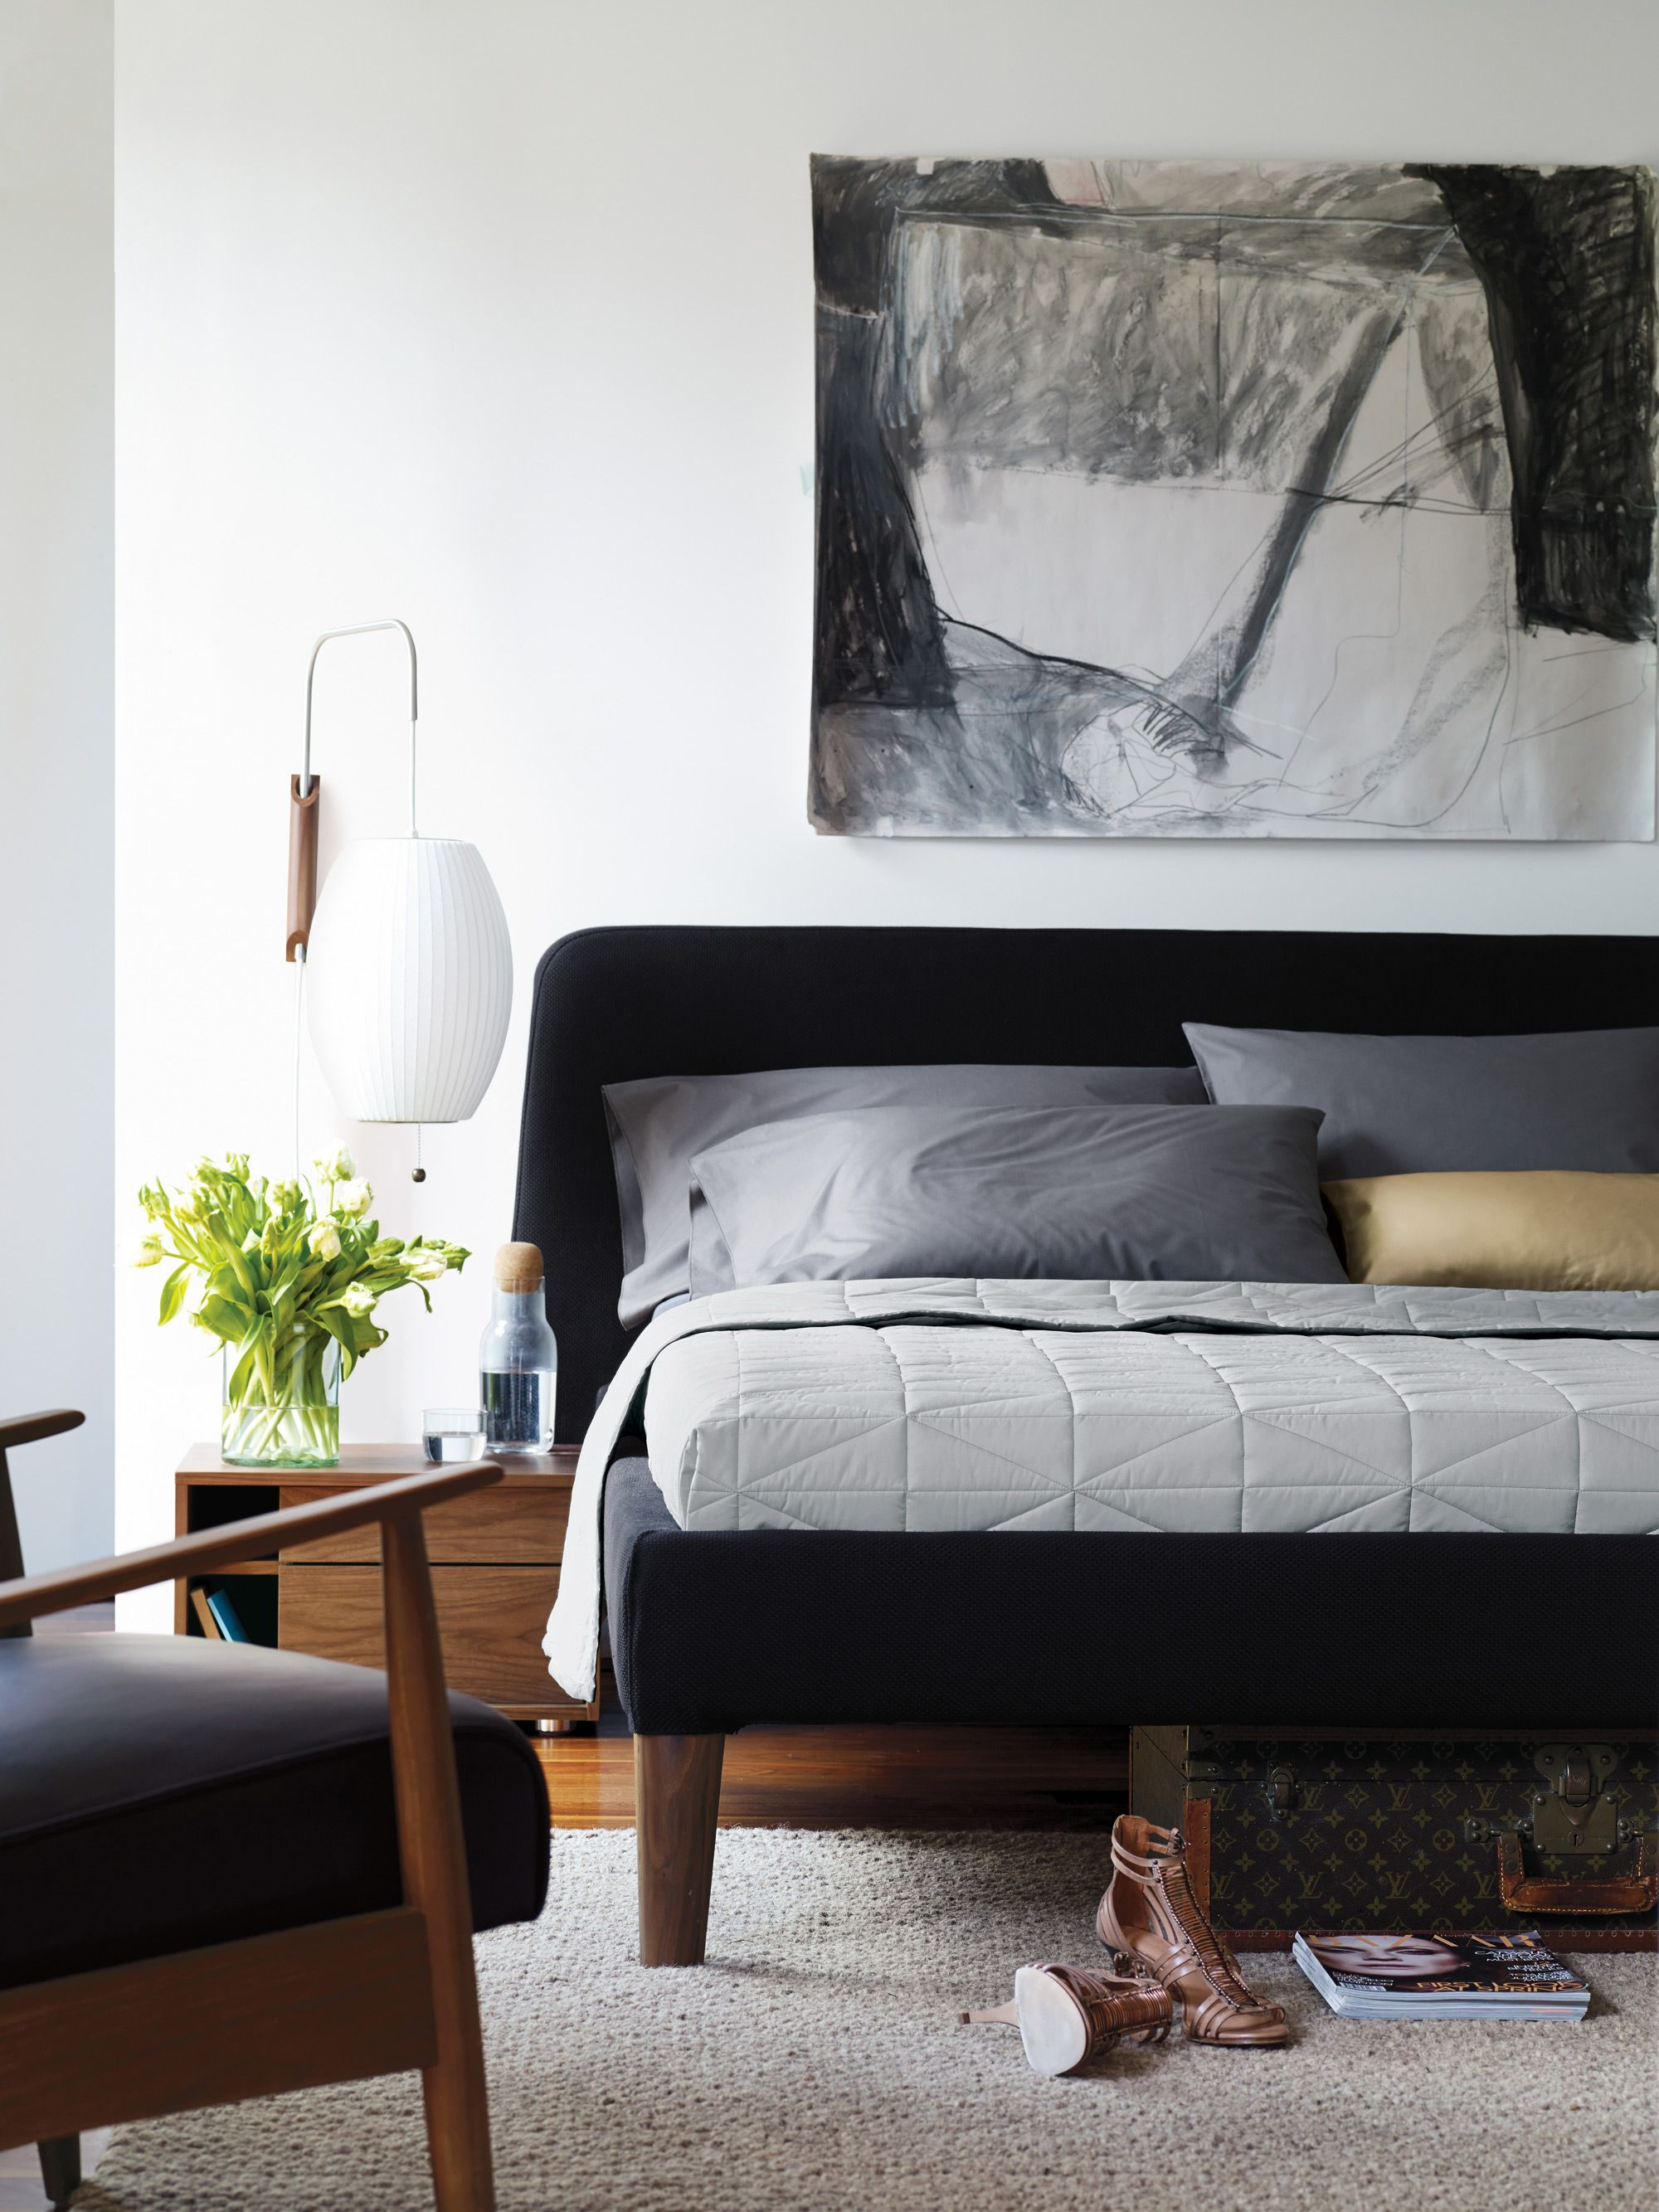 We Have Everything You Need To Make The Modern Bed(Room)